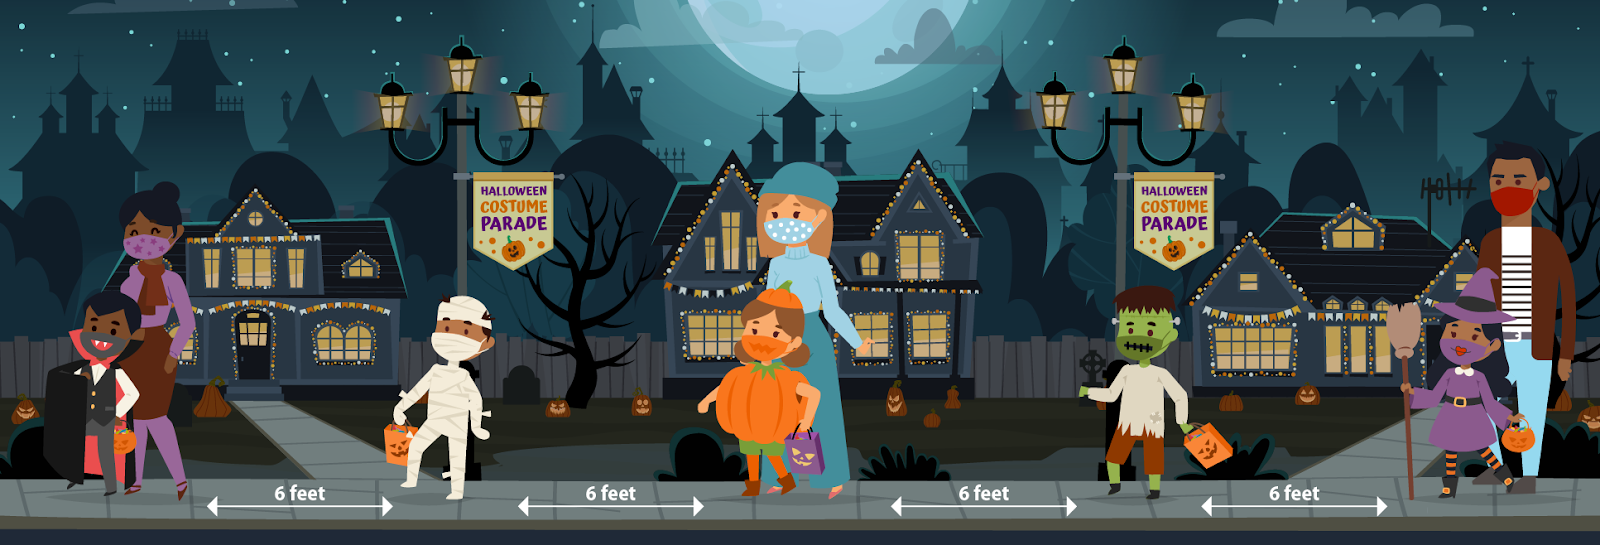 illustration of adults and children participating in a Halloween costume parade